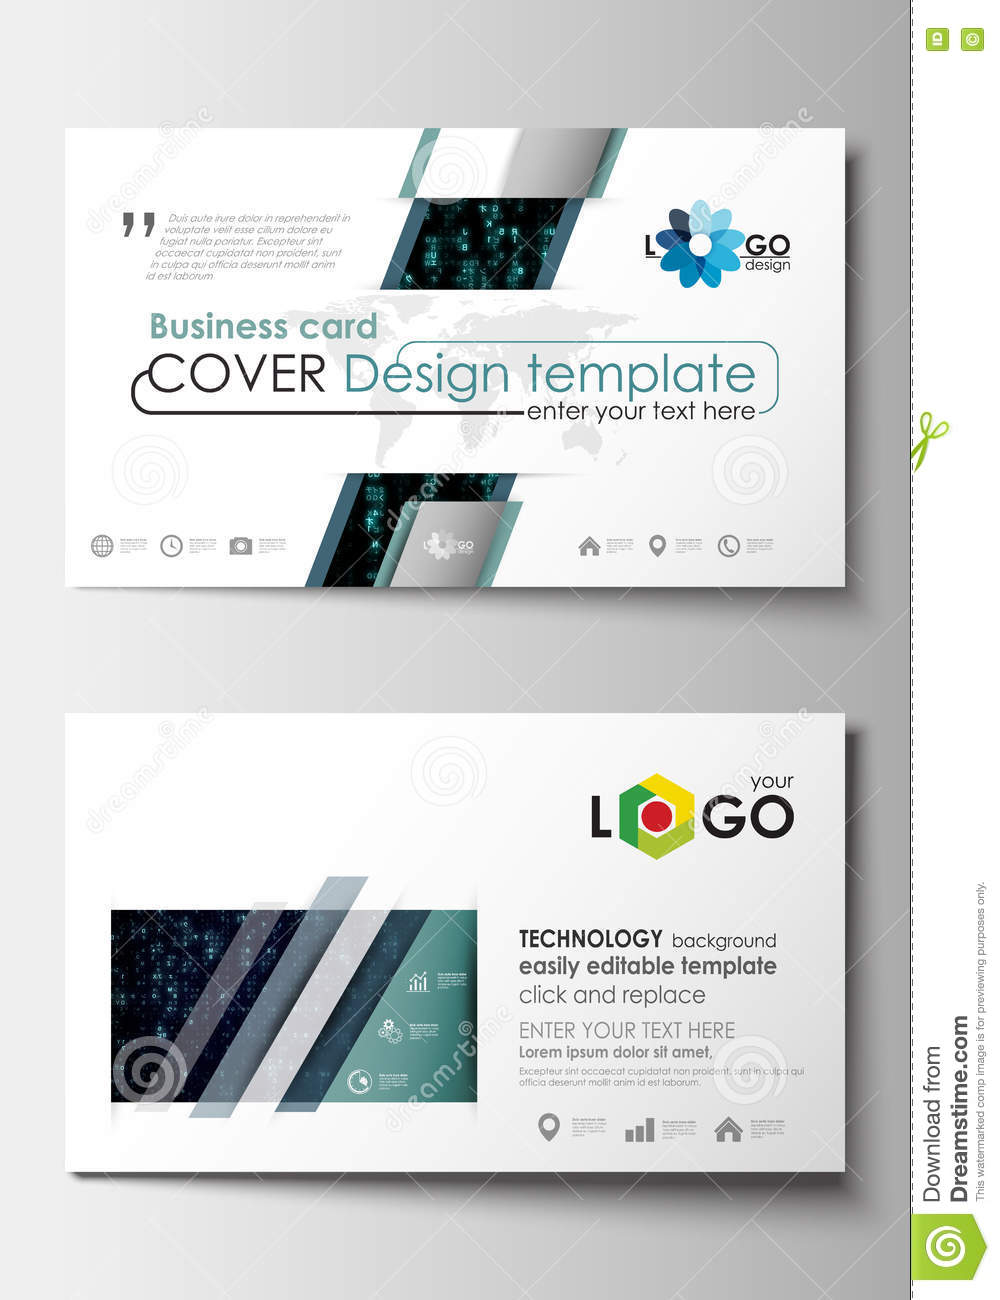 Business card templates cover design template easy editable blank download business card templates cover design template easy editable blank flat layout cheaphphosting Choice Image